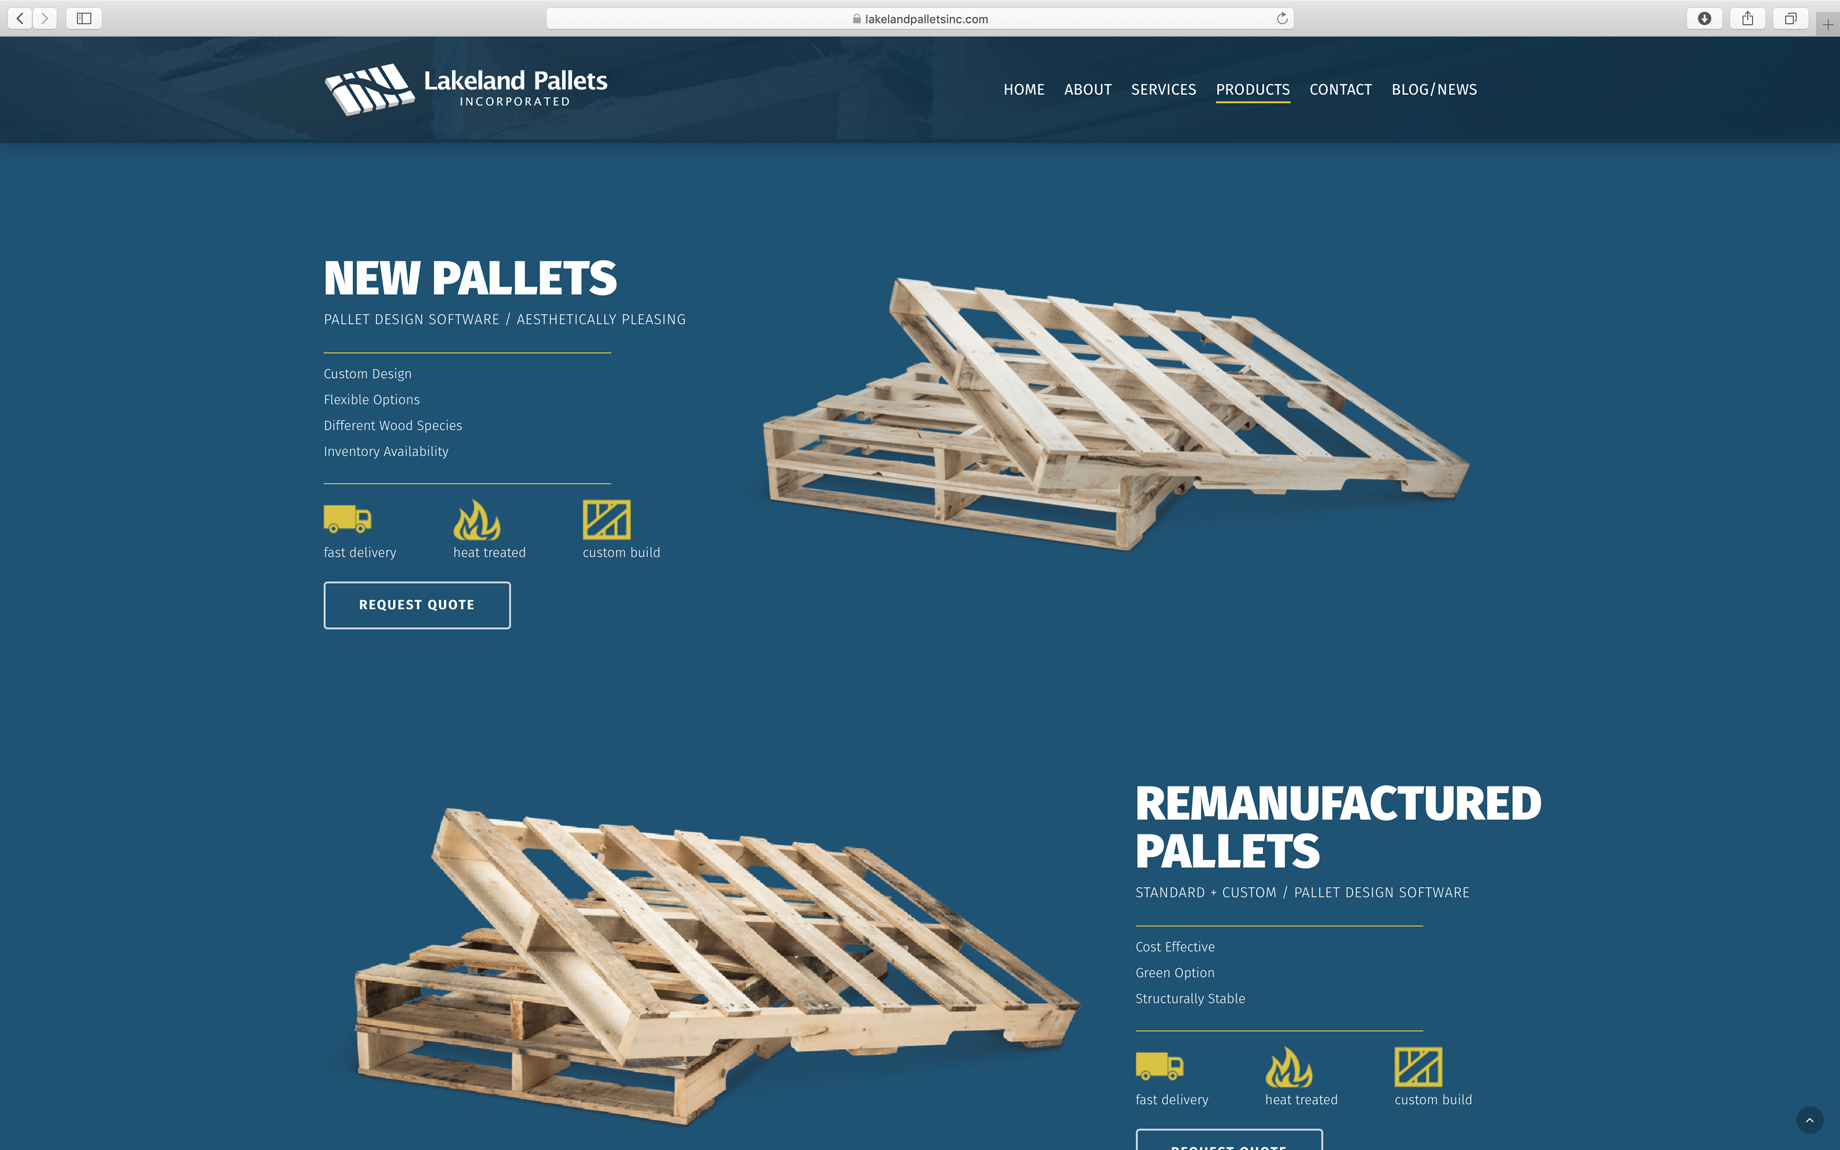 screenshot of clean industrial website design product page layout